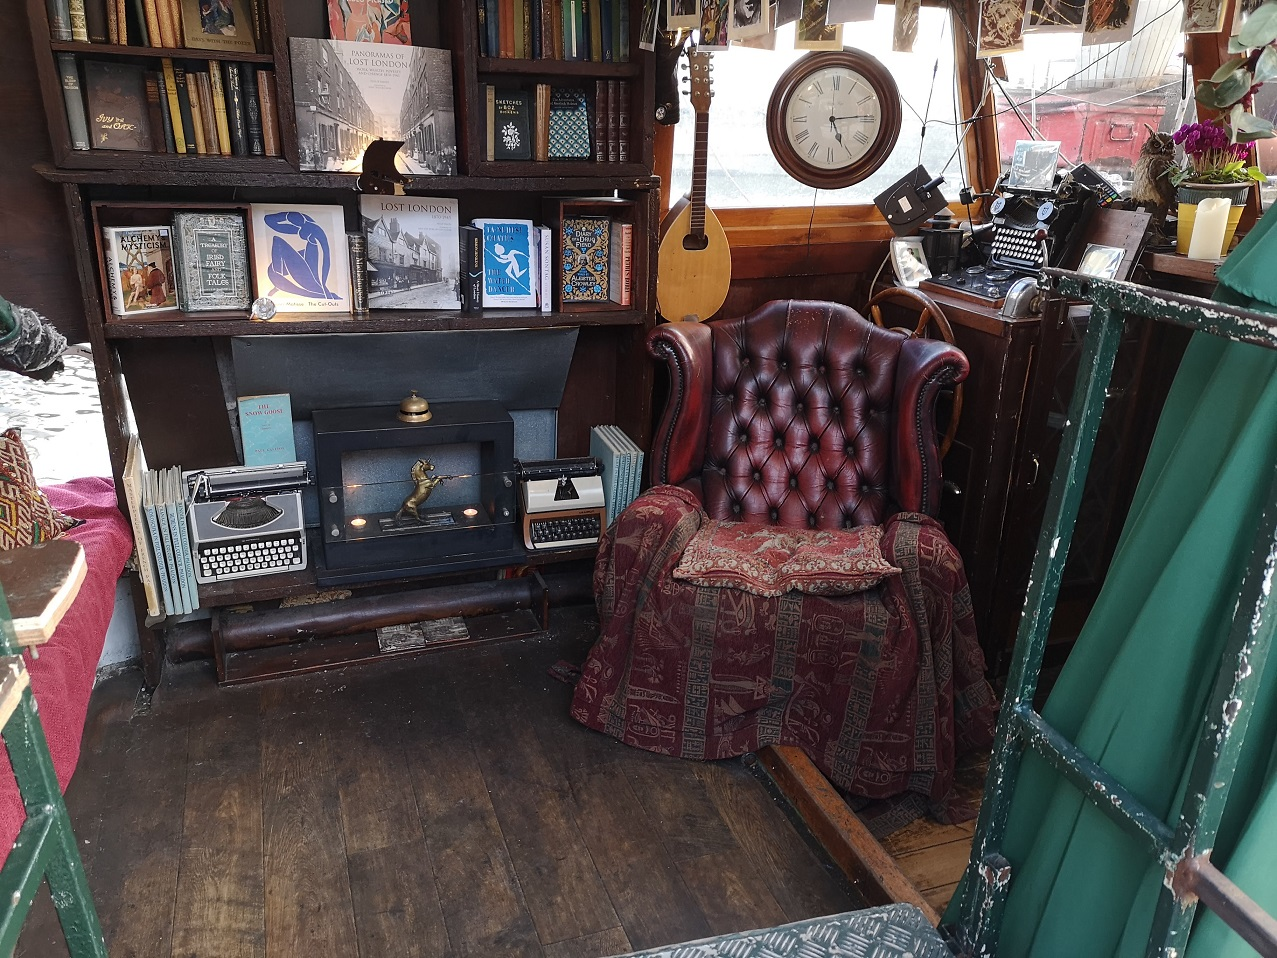 Boat Bookshop interior